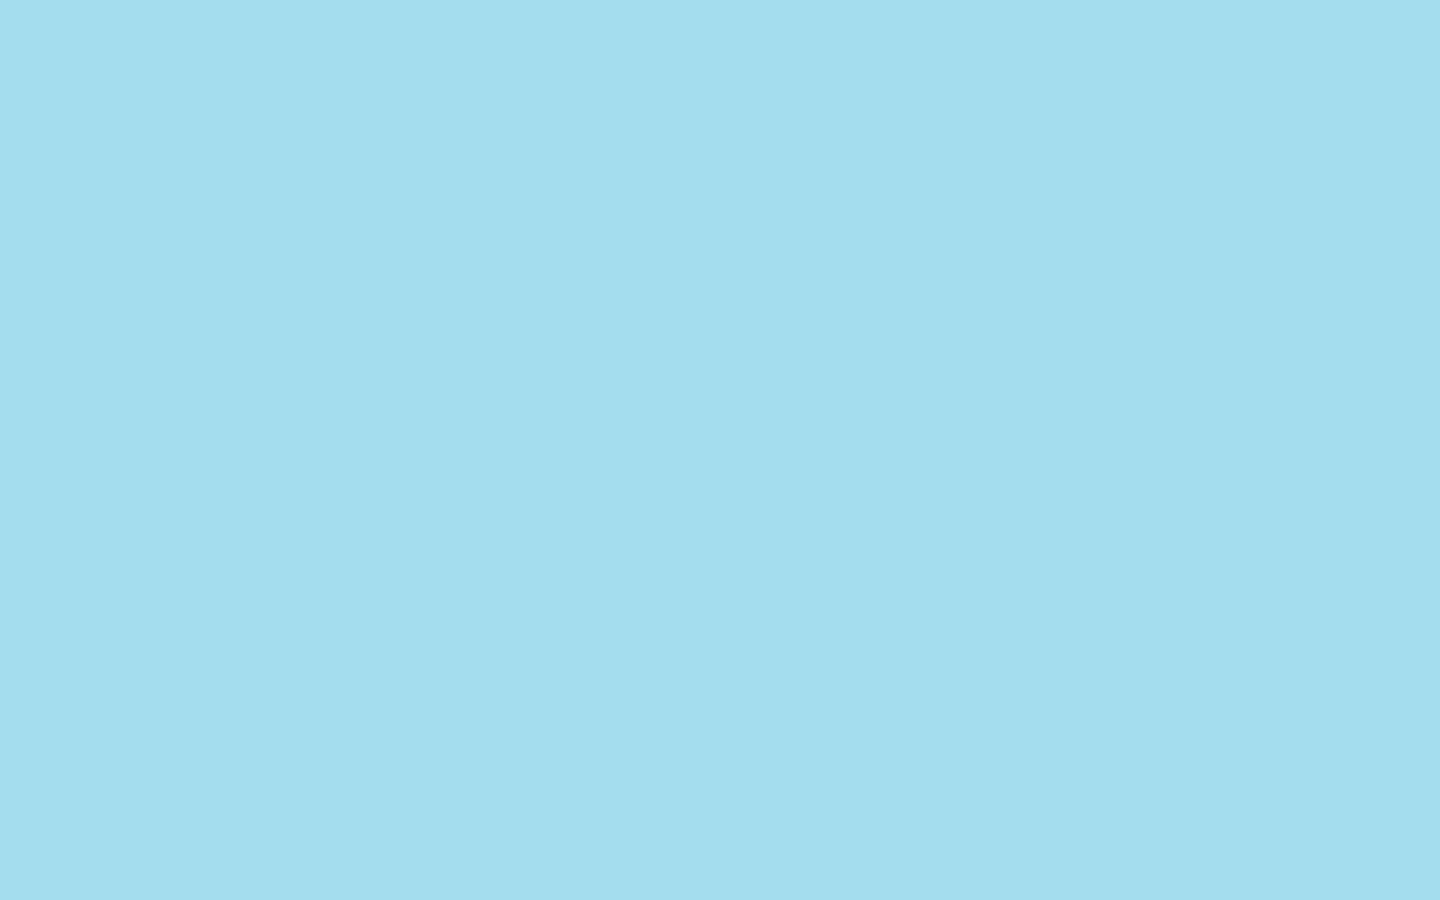 1440x900 Non-photo Blue Solid Color Background